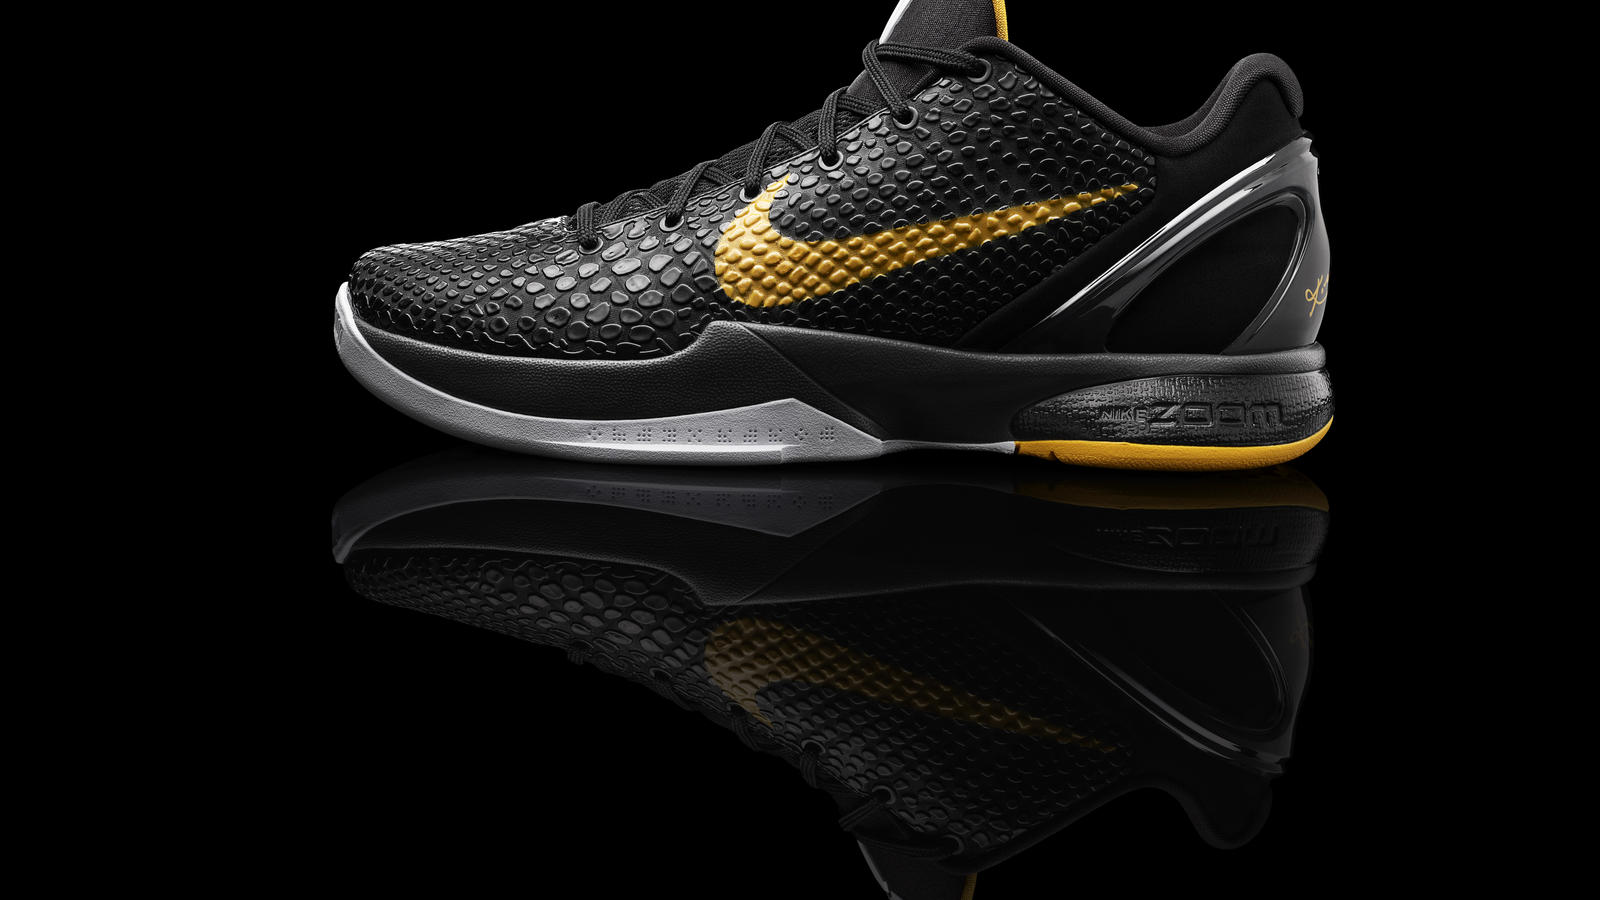 f9de548ef31e ... france december 7 2010 nike nyse nke and kobe bryanttoday announced the  debut of the nike